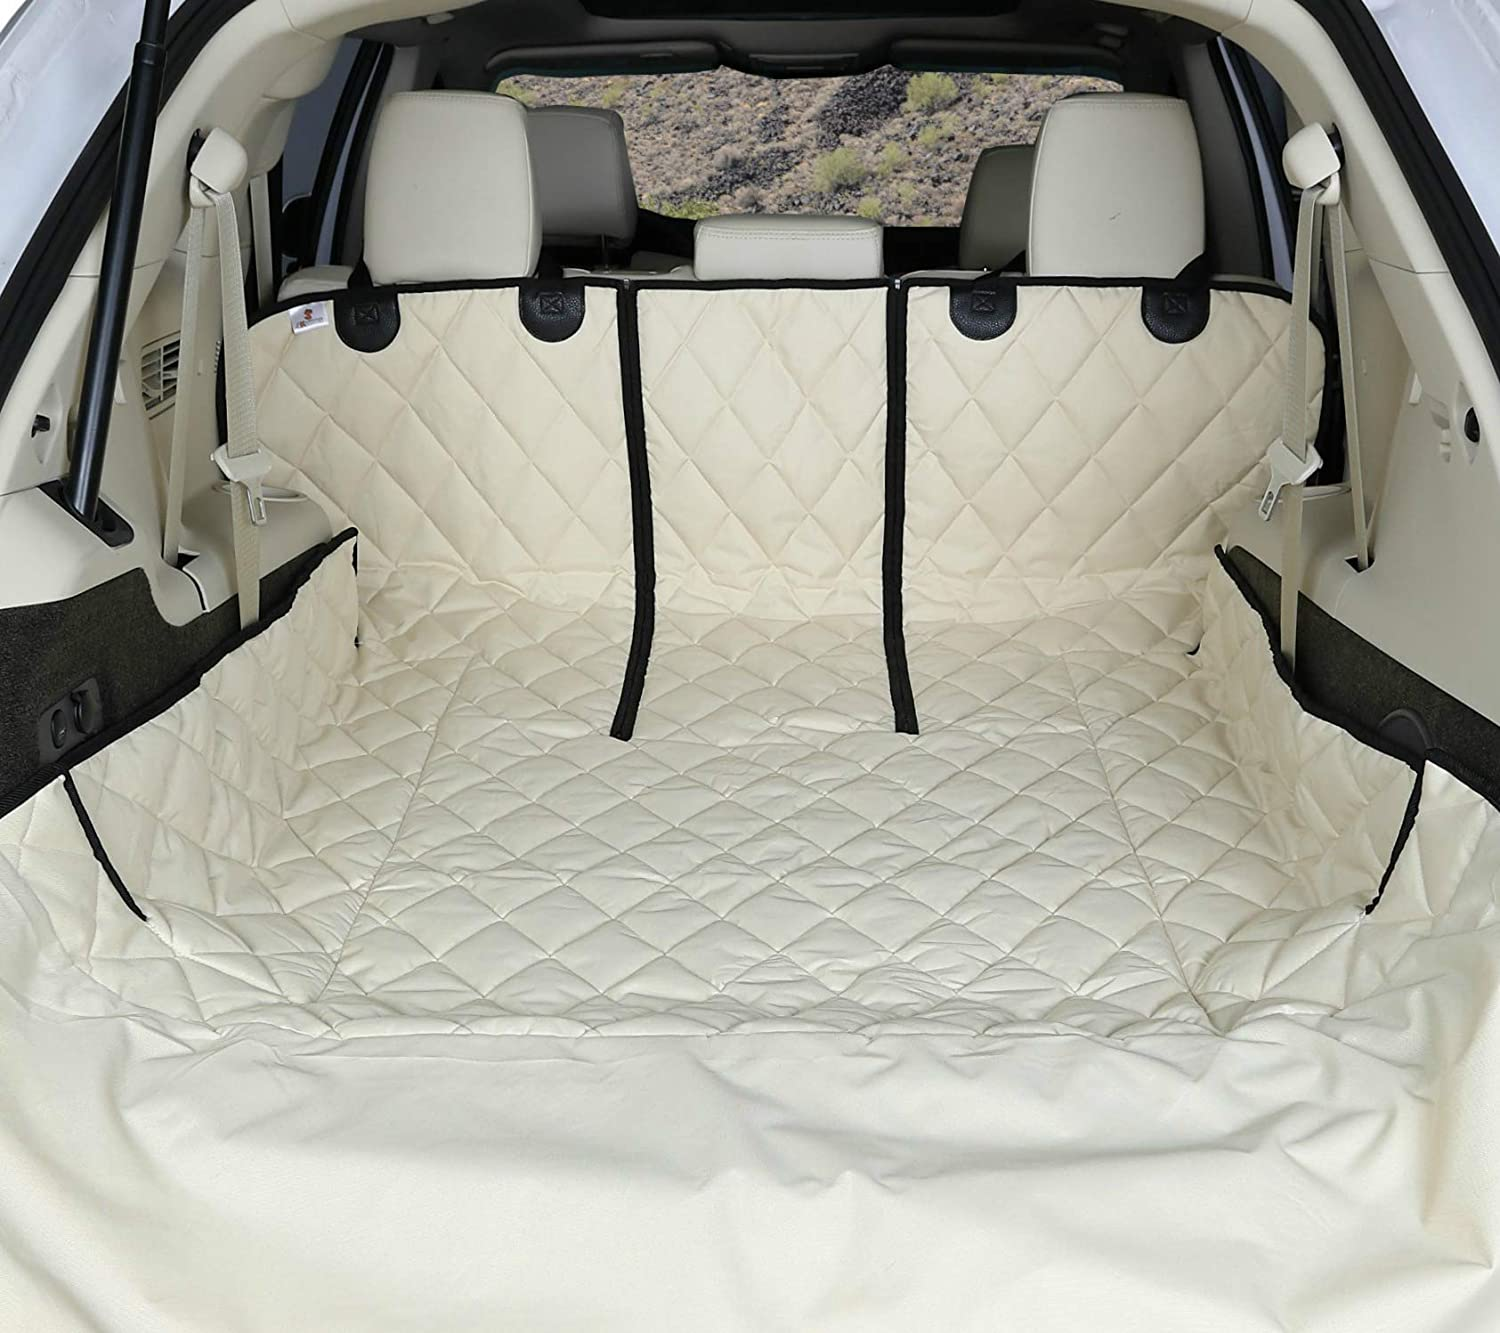 4Knines SUV Cargo Liner for Be super welcome Fold Down and 40 - Ar 60 Split Max 88% OFF Seats